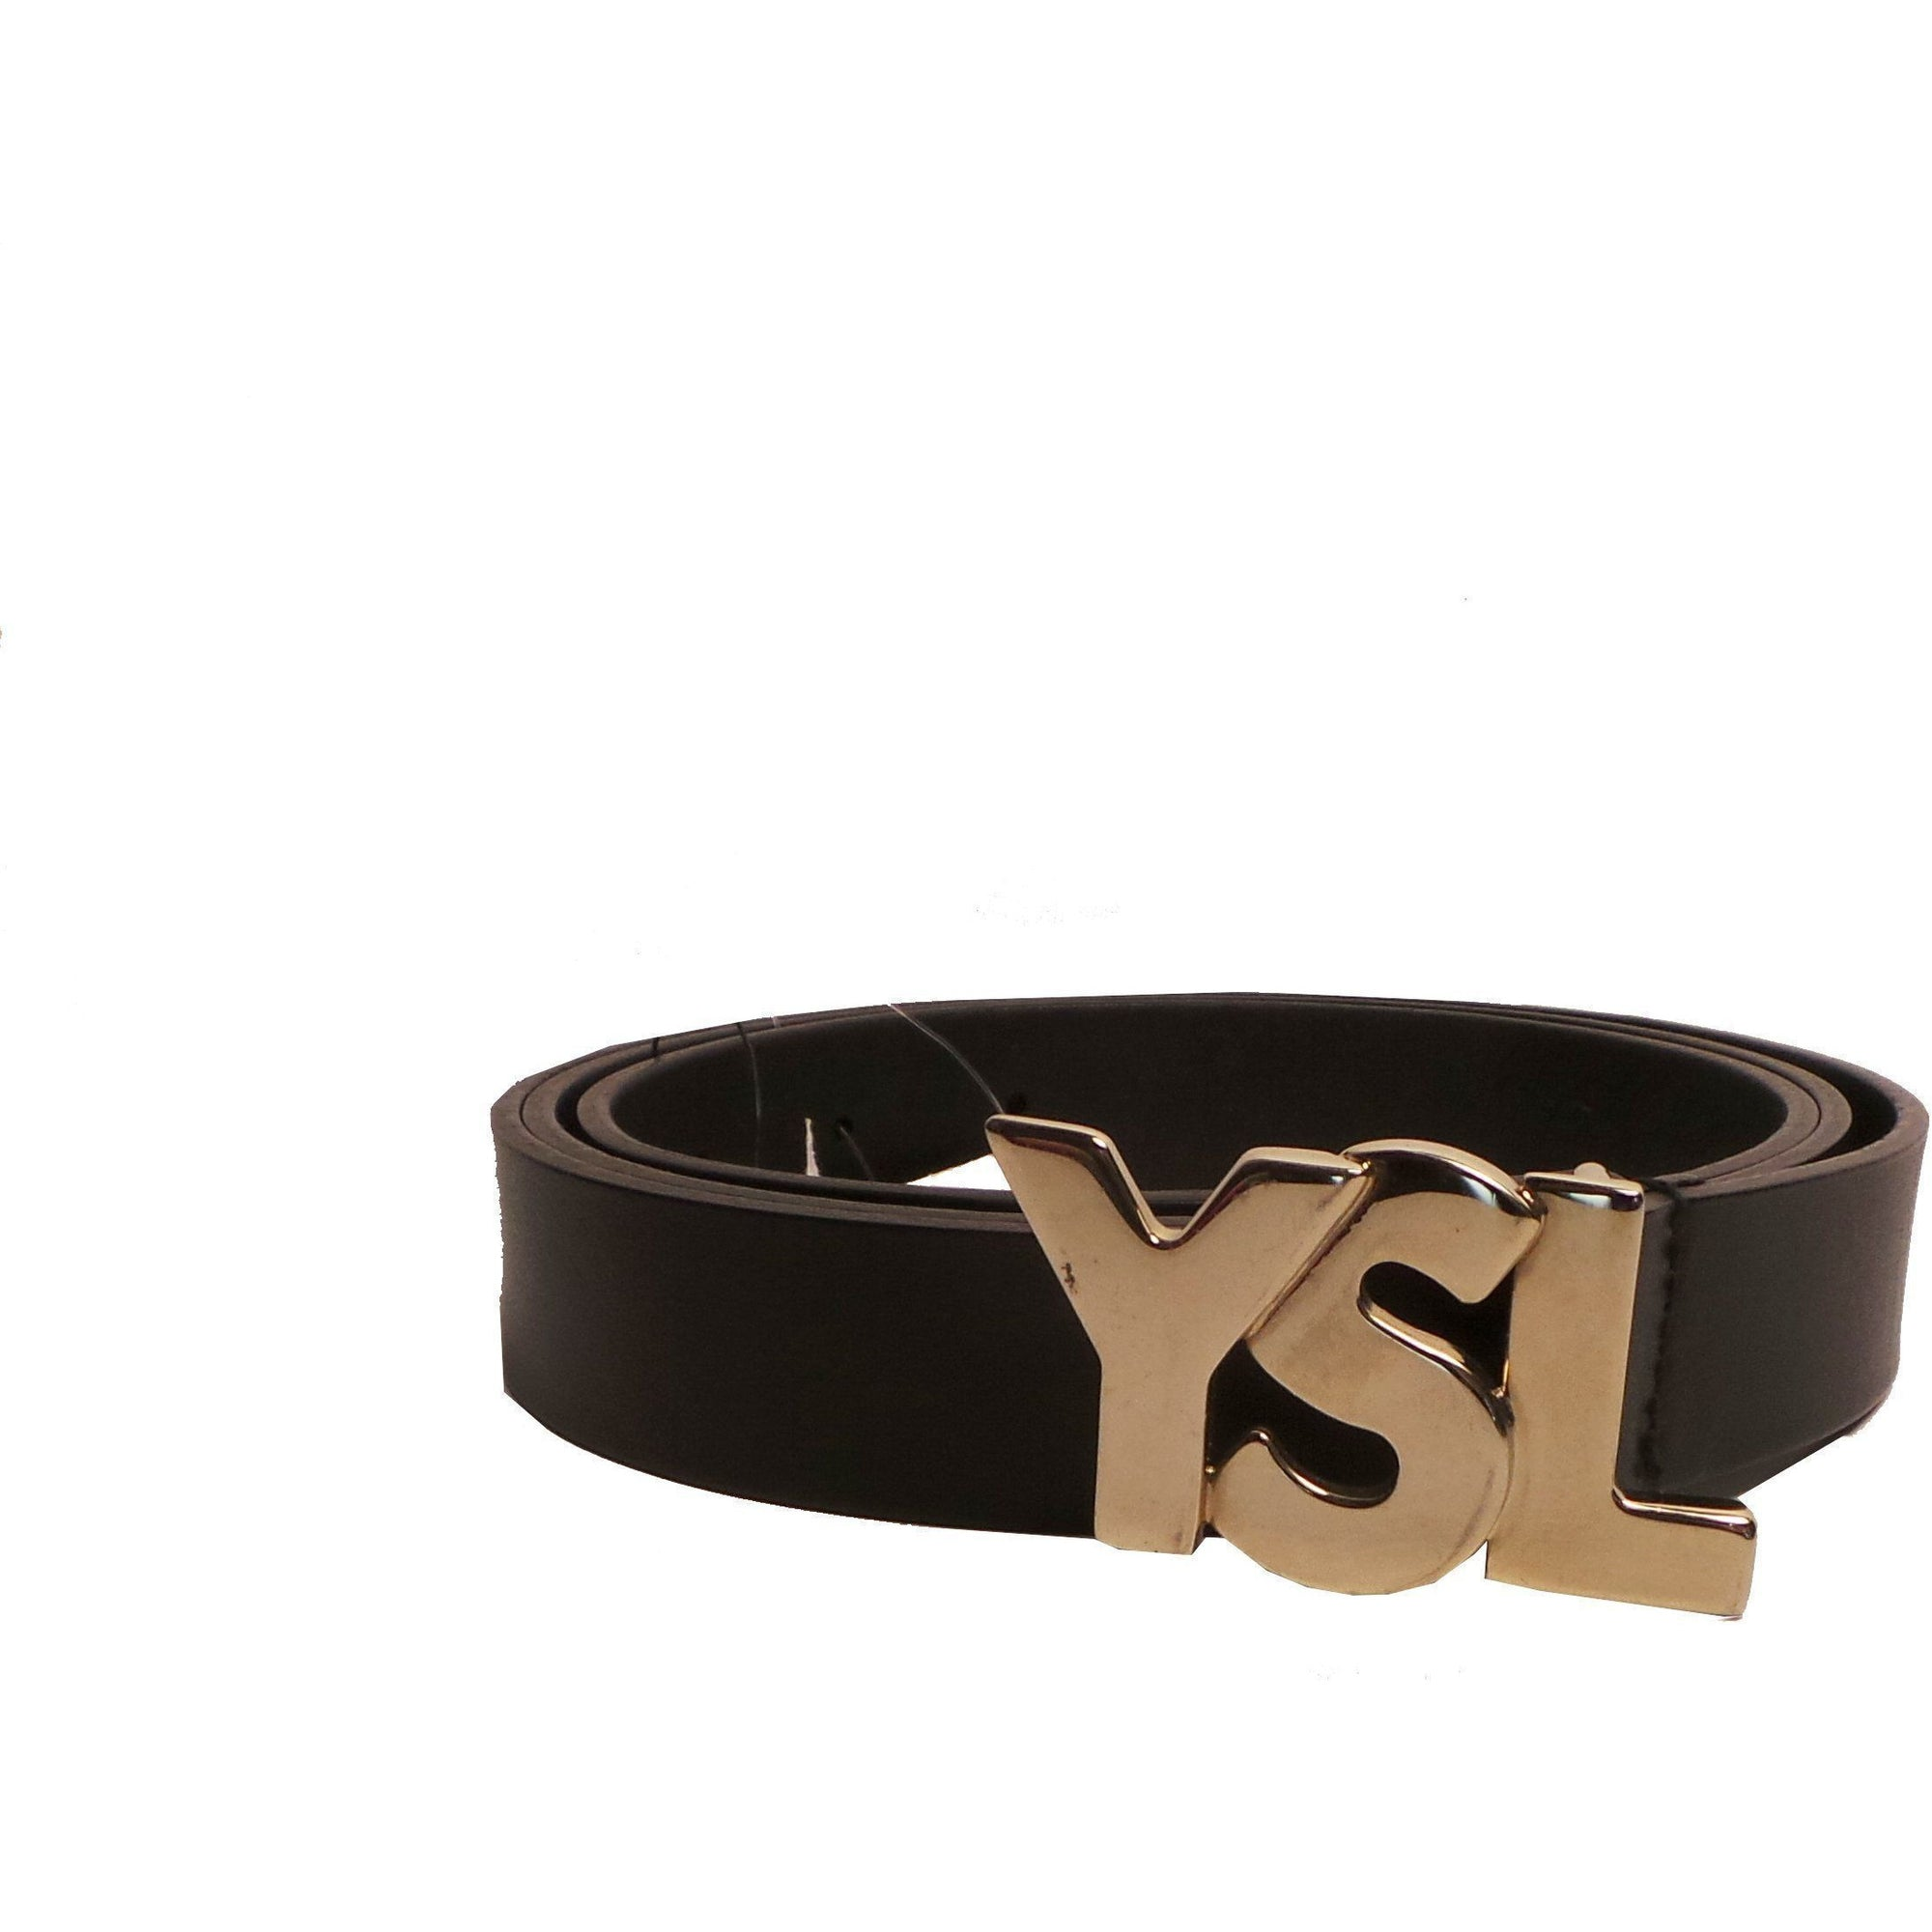 Saint Laurent YSL Black Unisex Leather Belt 274610 Size: 110/46